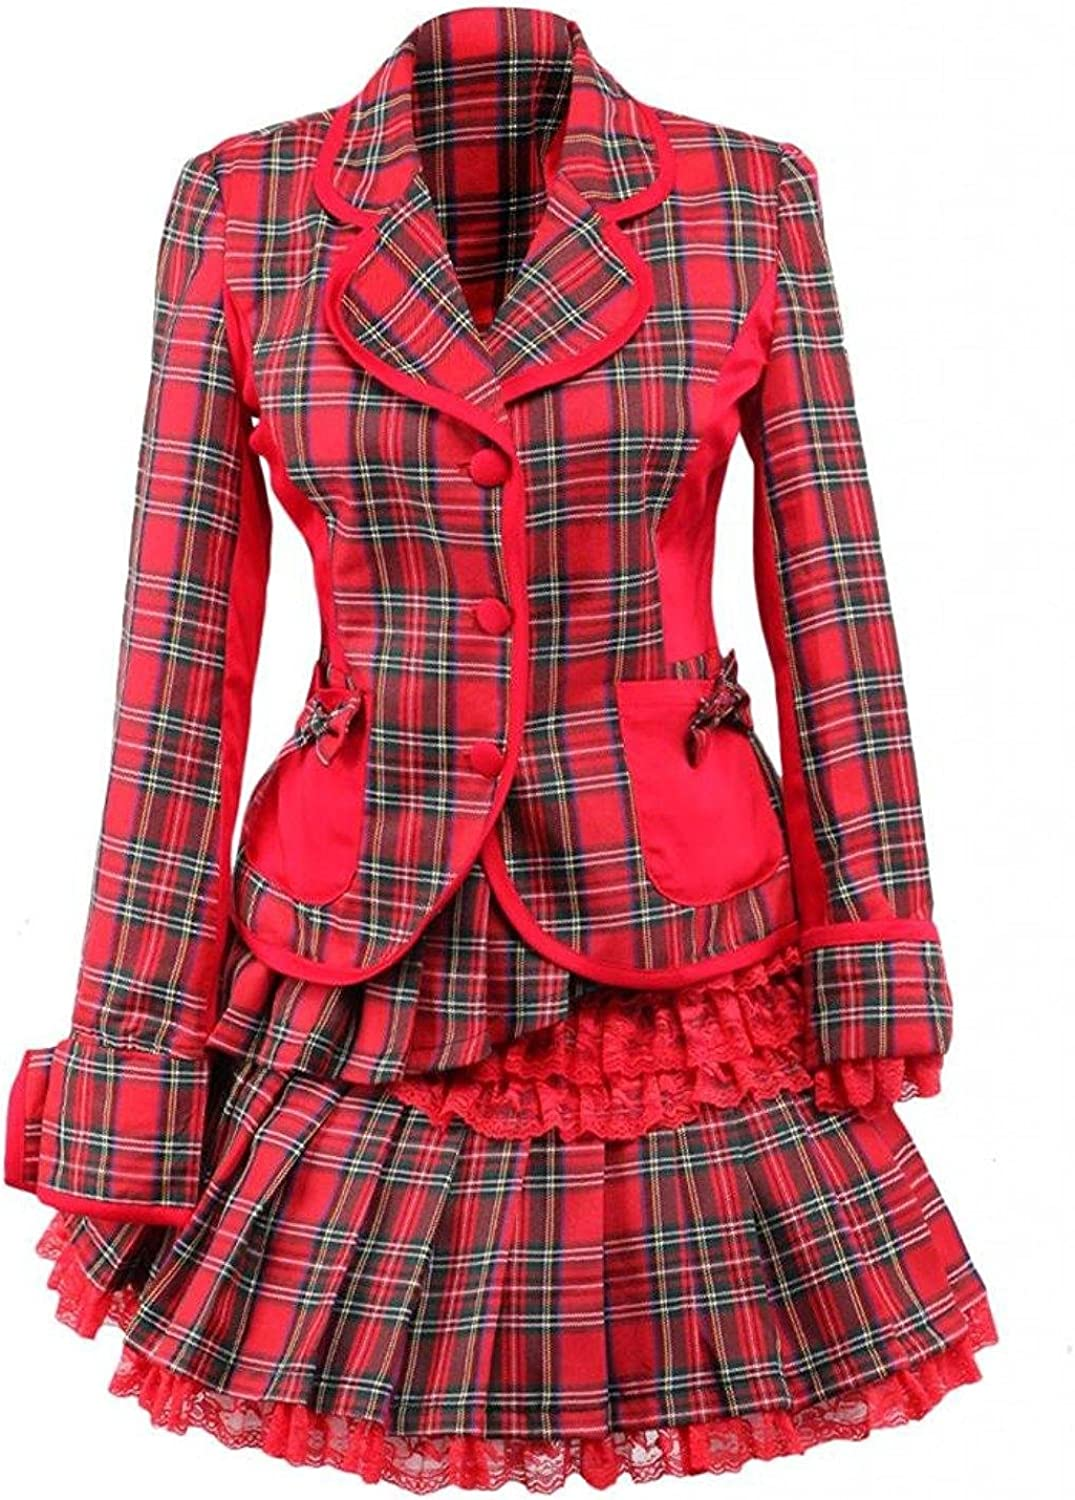 Cemavin Womens Cotton Red Gingham School Lolita Top and Skirt